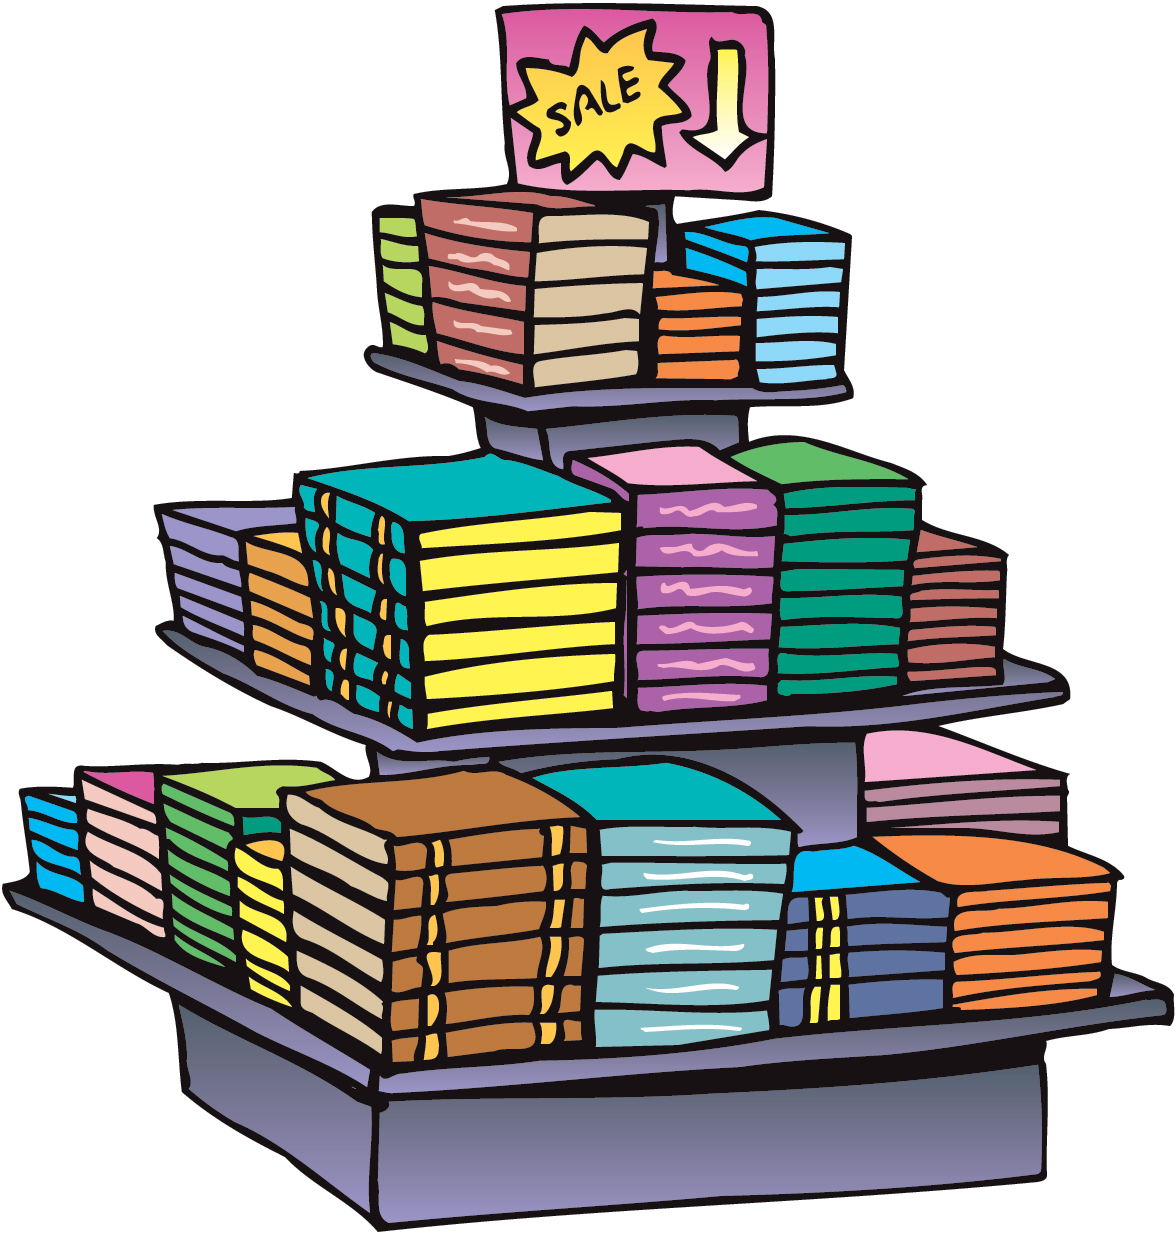 Display clipart book stall To choose published art book's